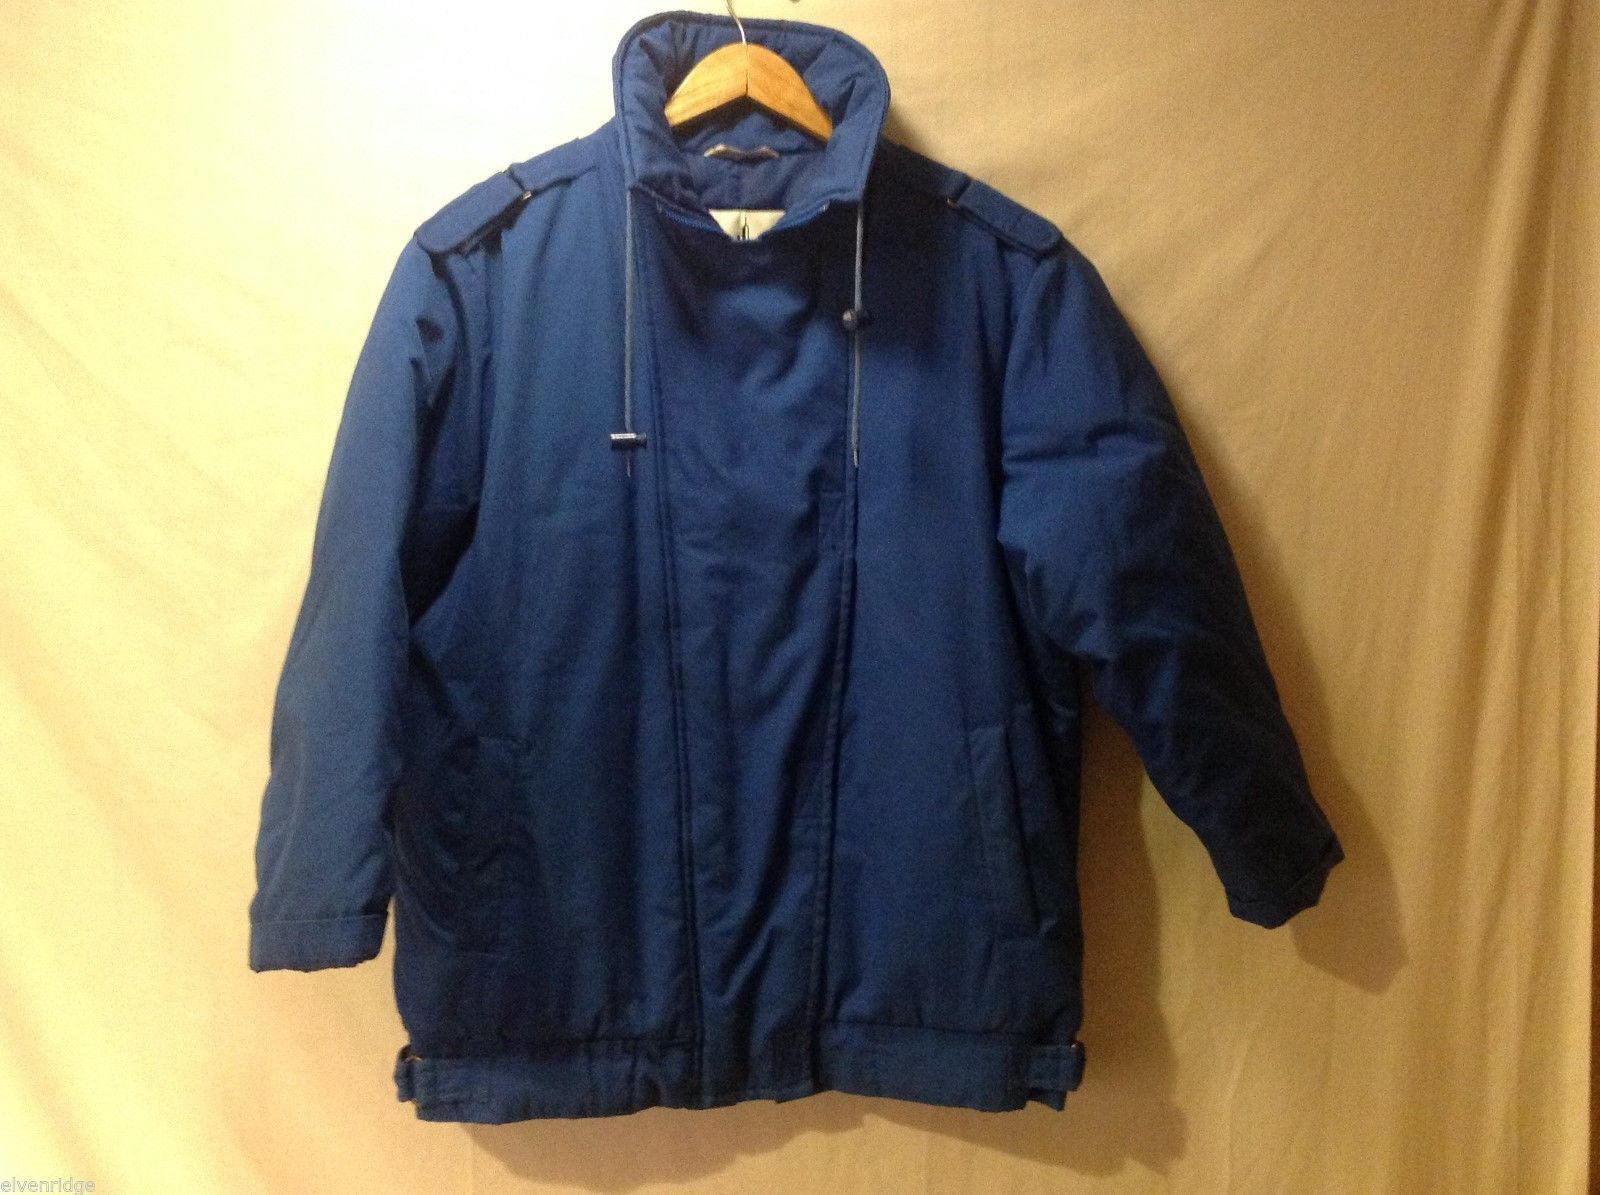 Misty Harbor Mens Royal Blue Winter Coat, Size 12